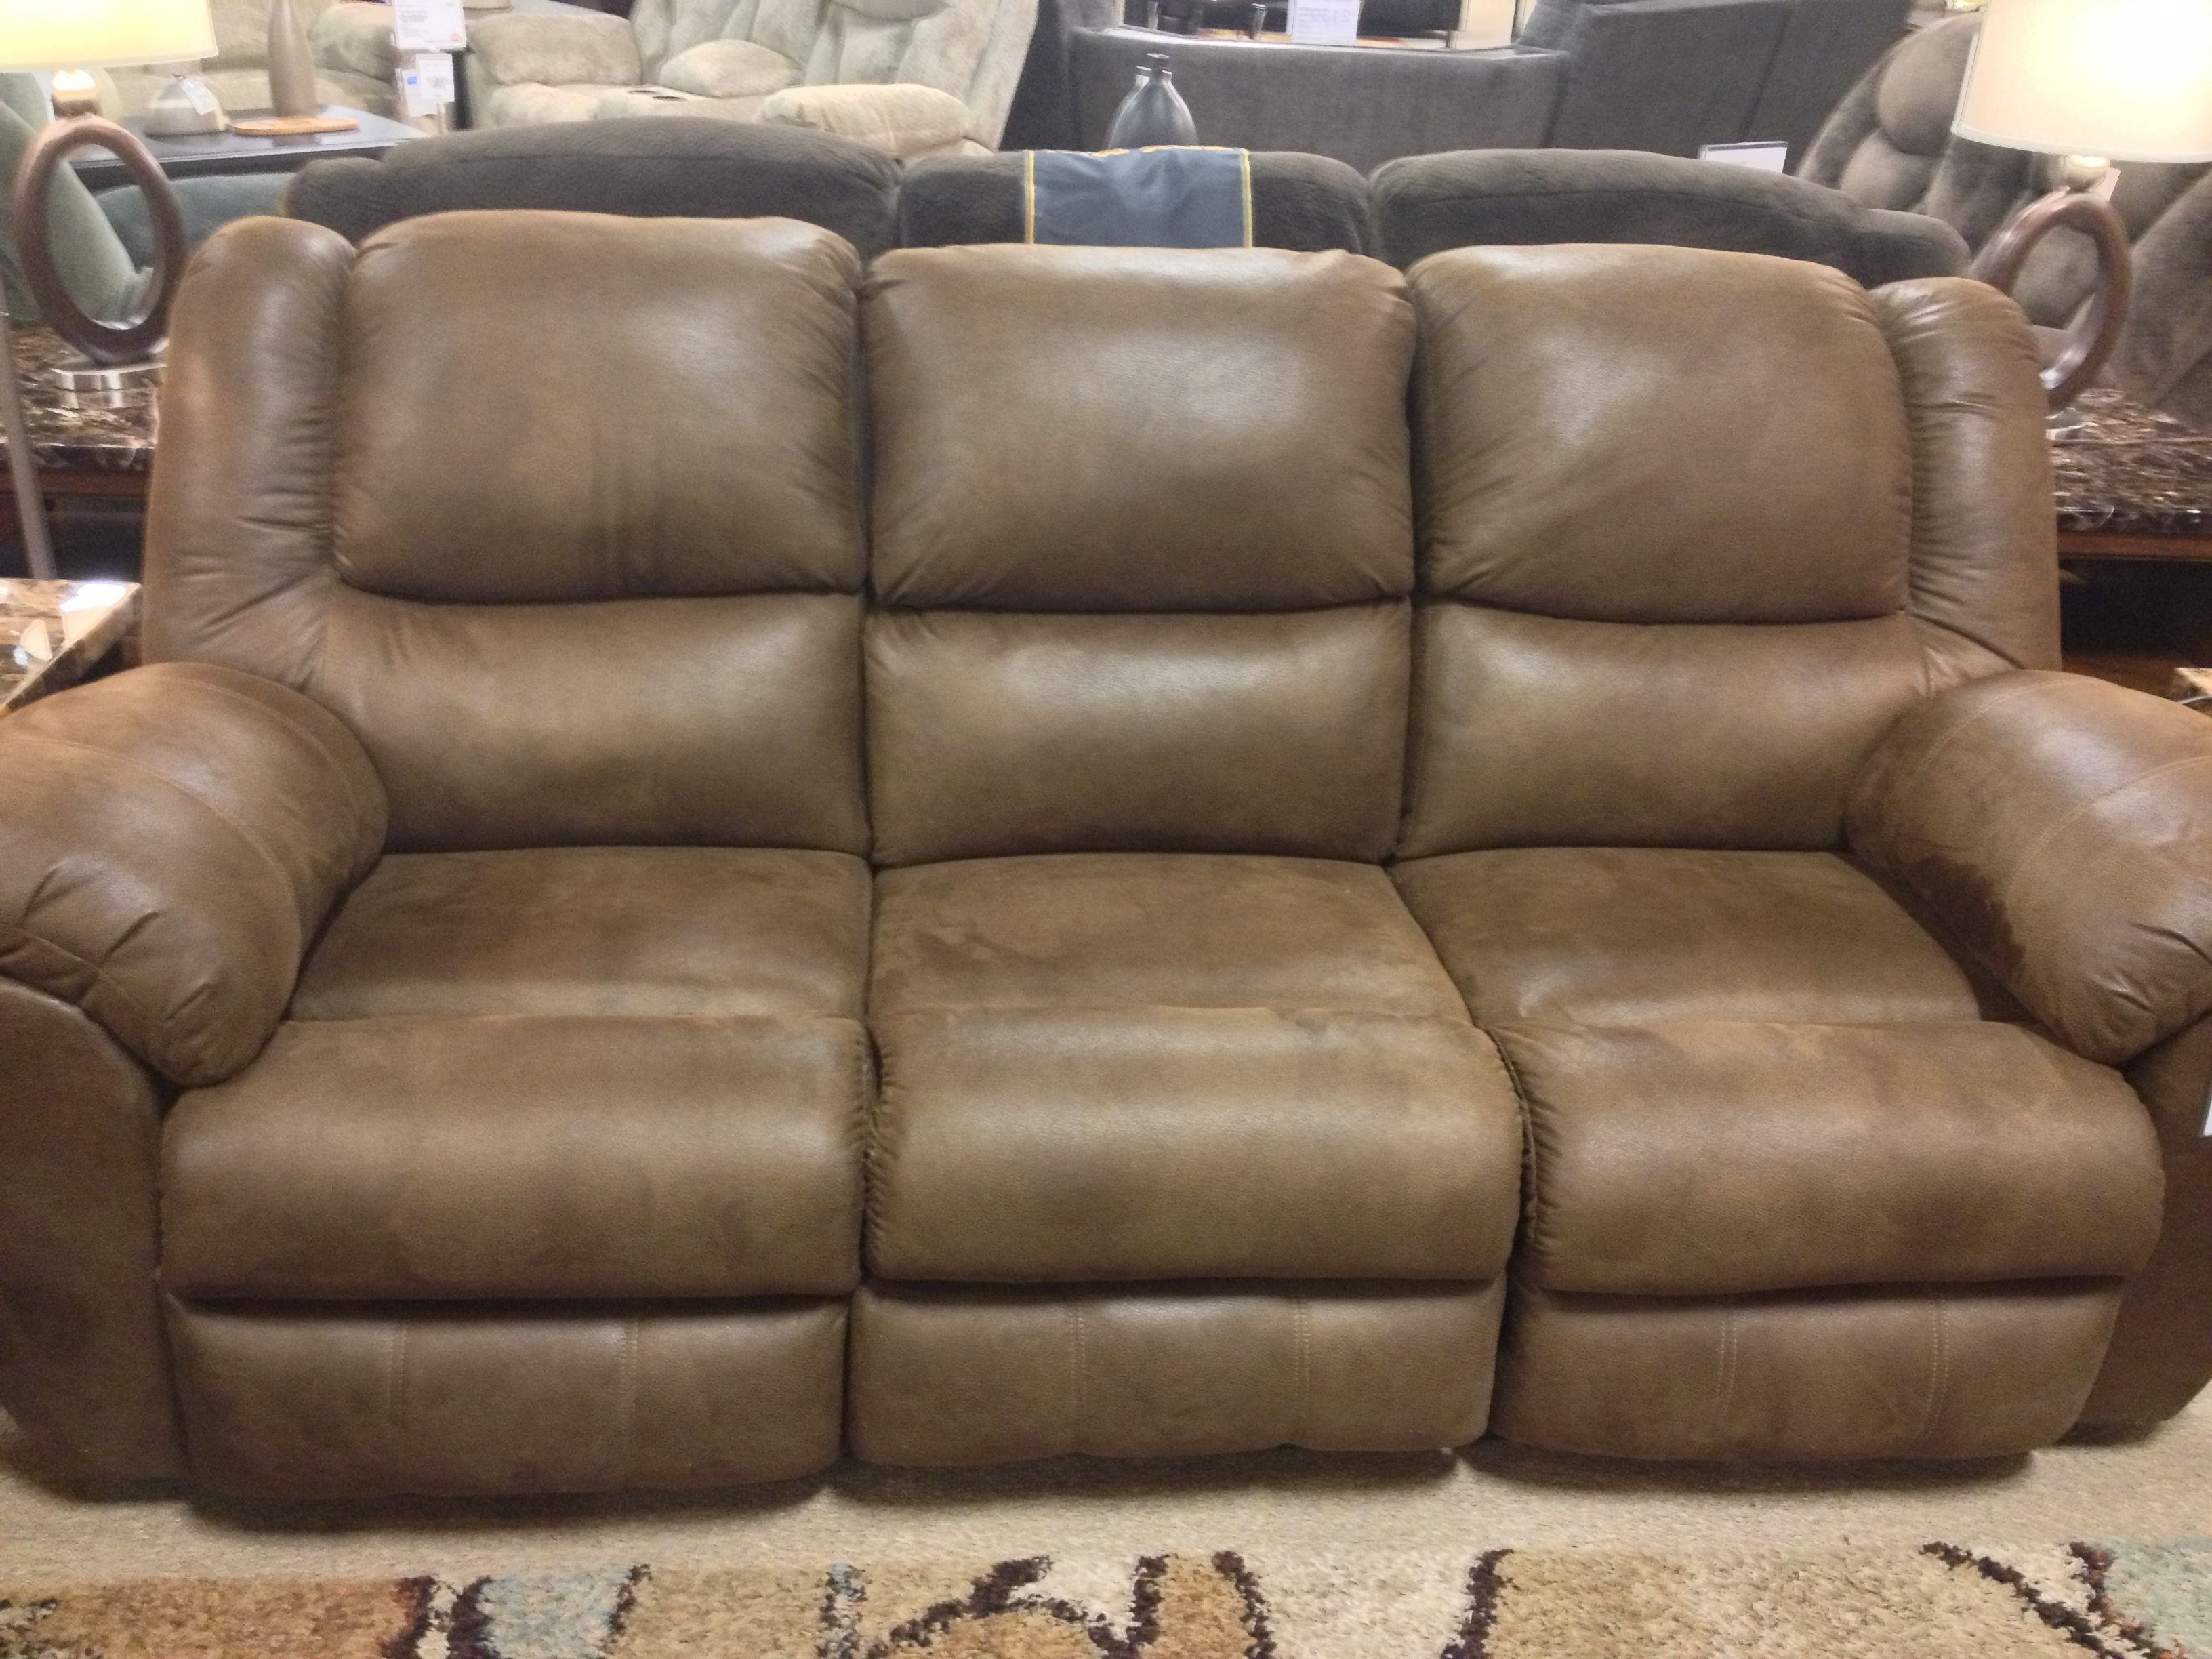 Quarterback Canyon Sofa at your Ashley Furniture Homestore in